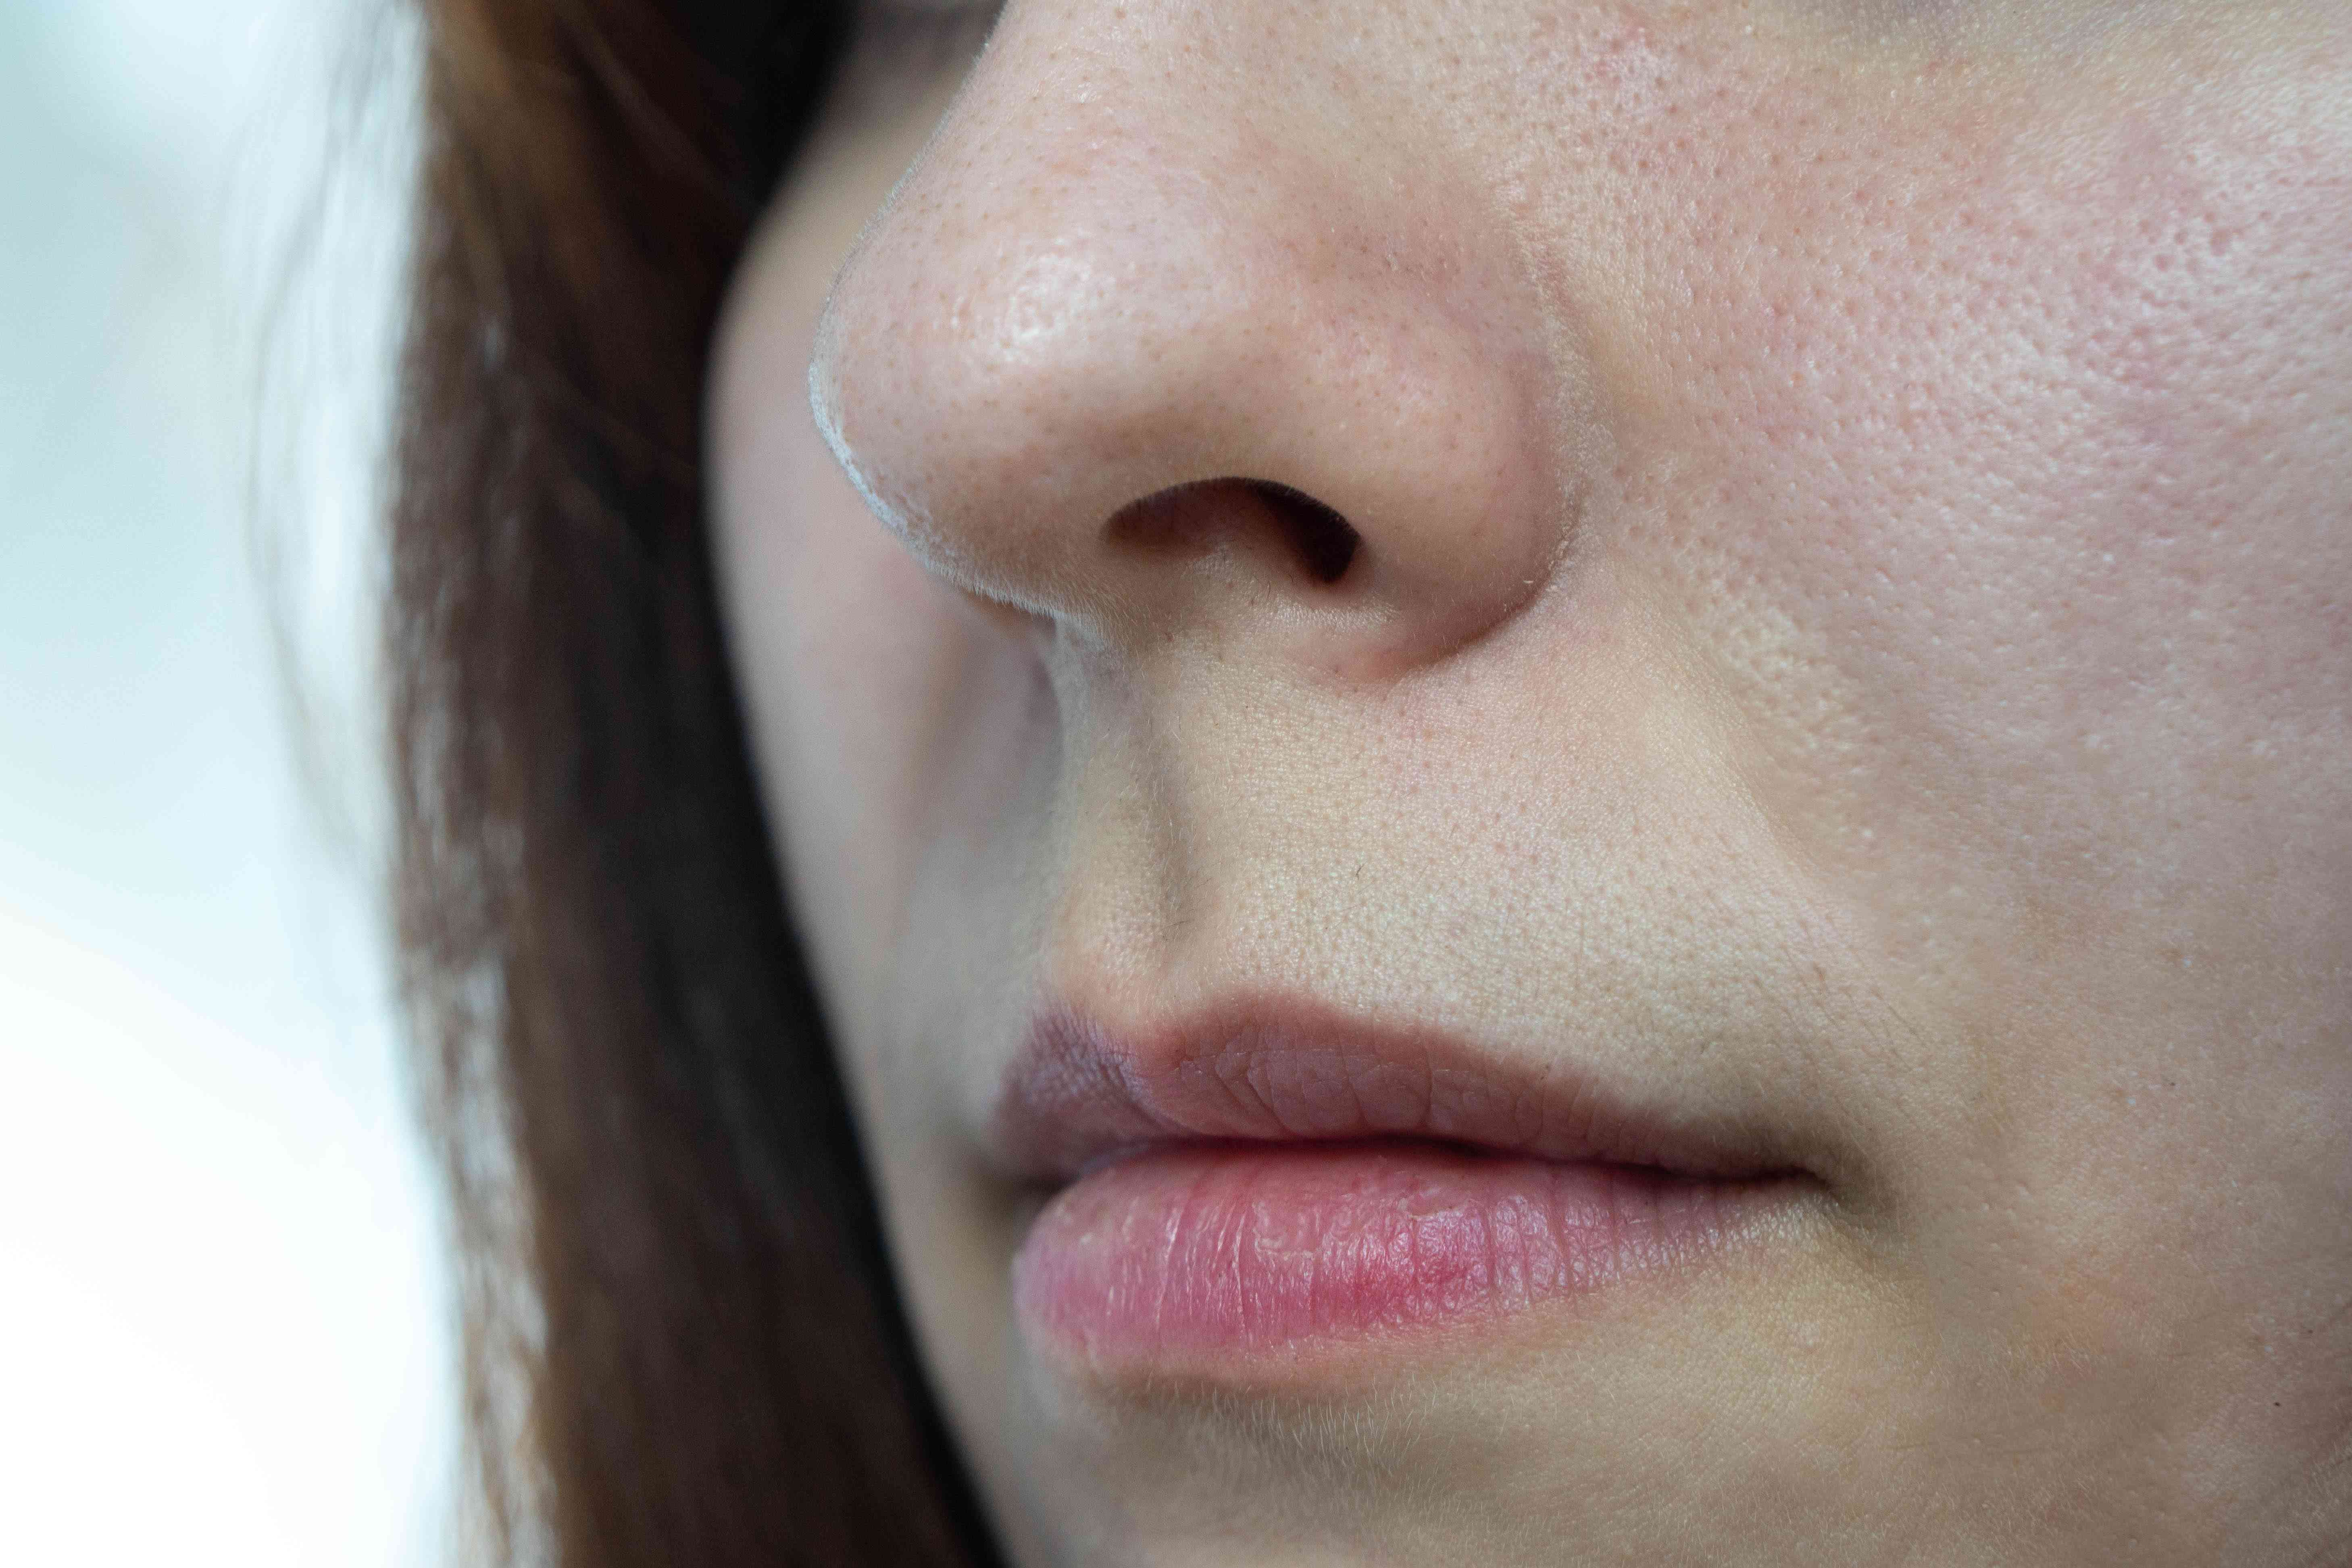 close shot of just woman's mouth and nose in 3/4 profile